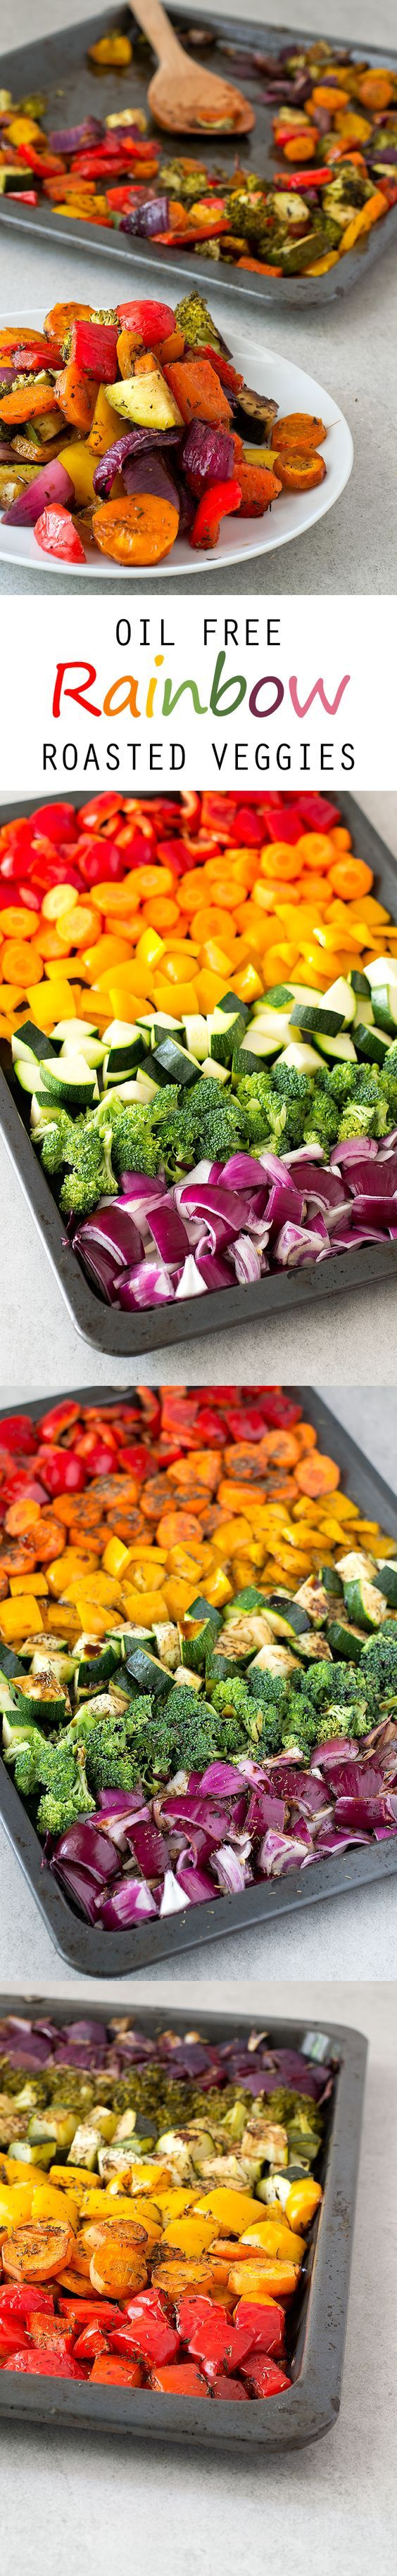 Oil Free Oven Roasted Rainbow Vegetables taste amazing | The WHOot